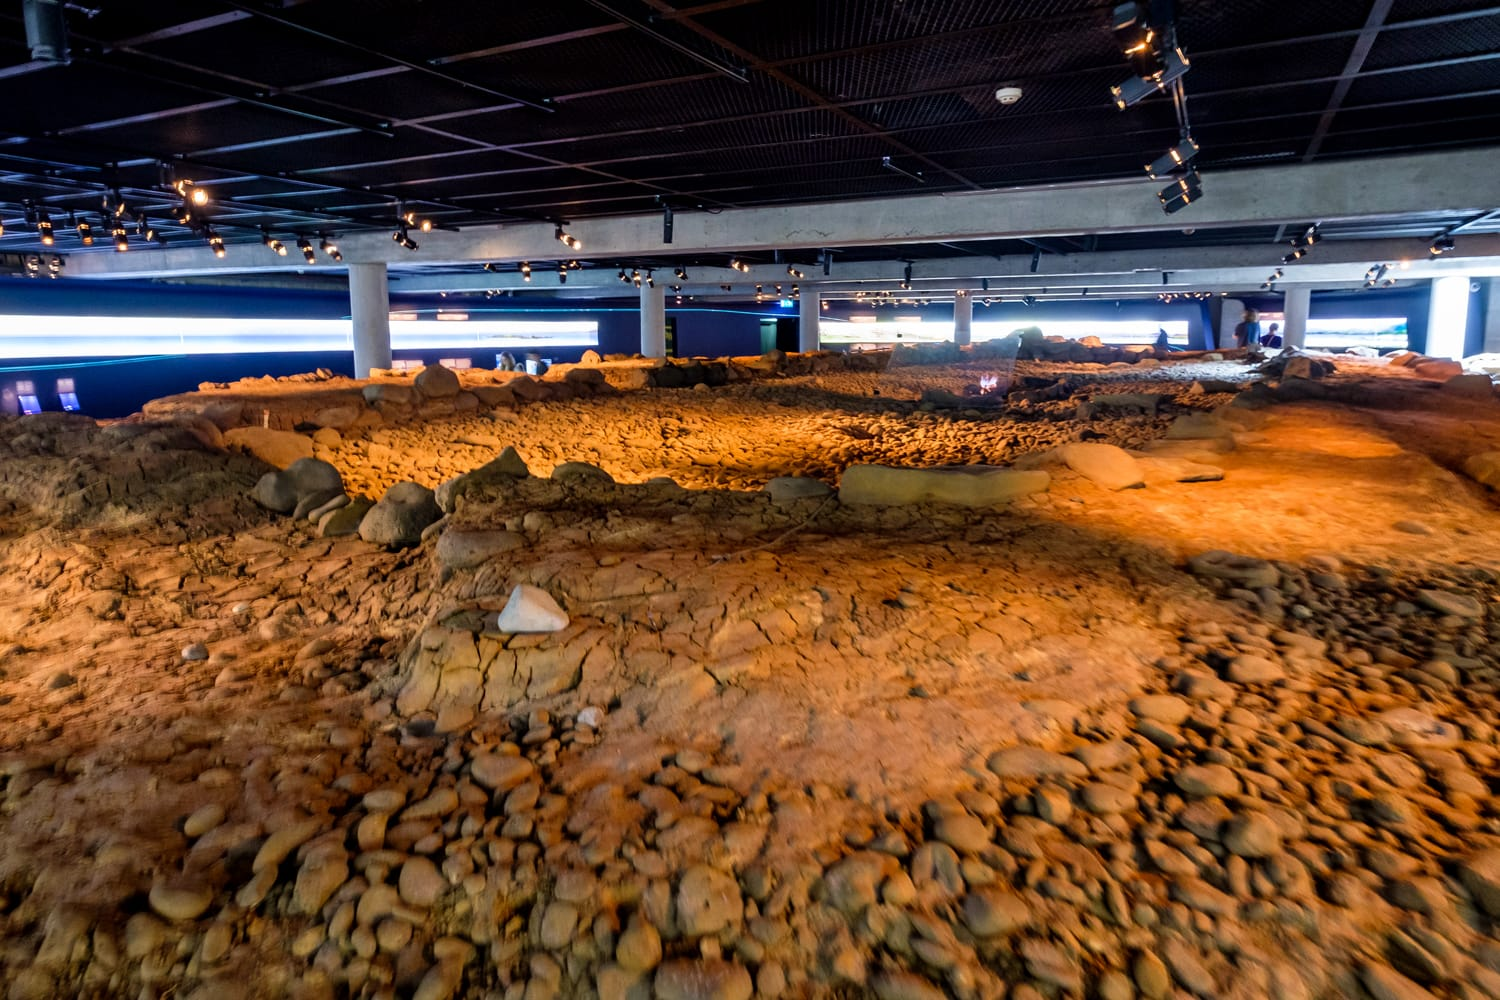 The Settlement Exhibition in Iceland